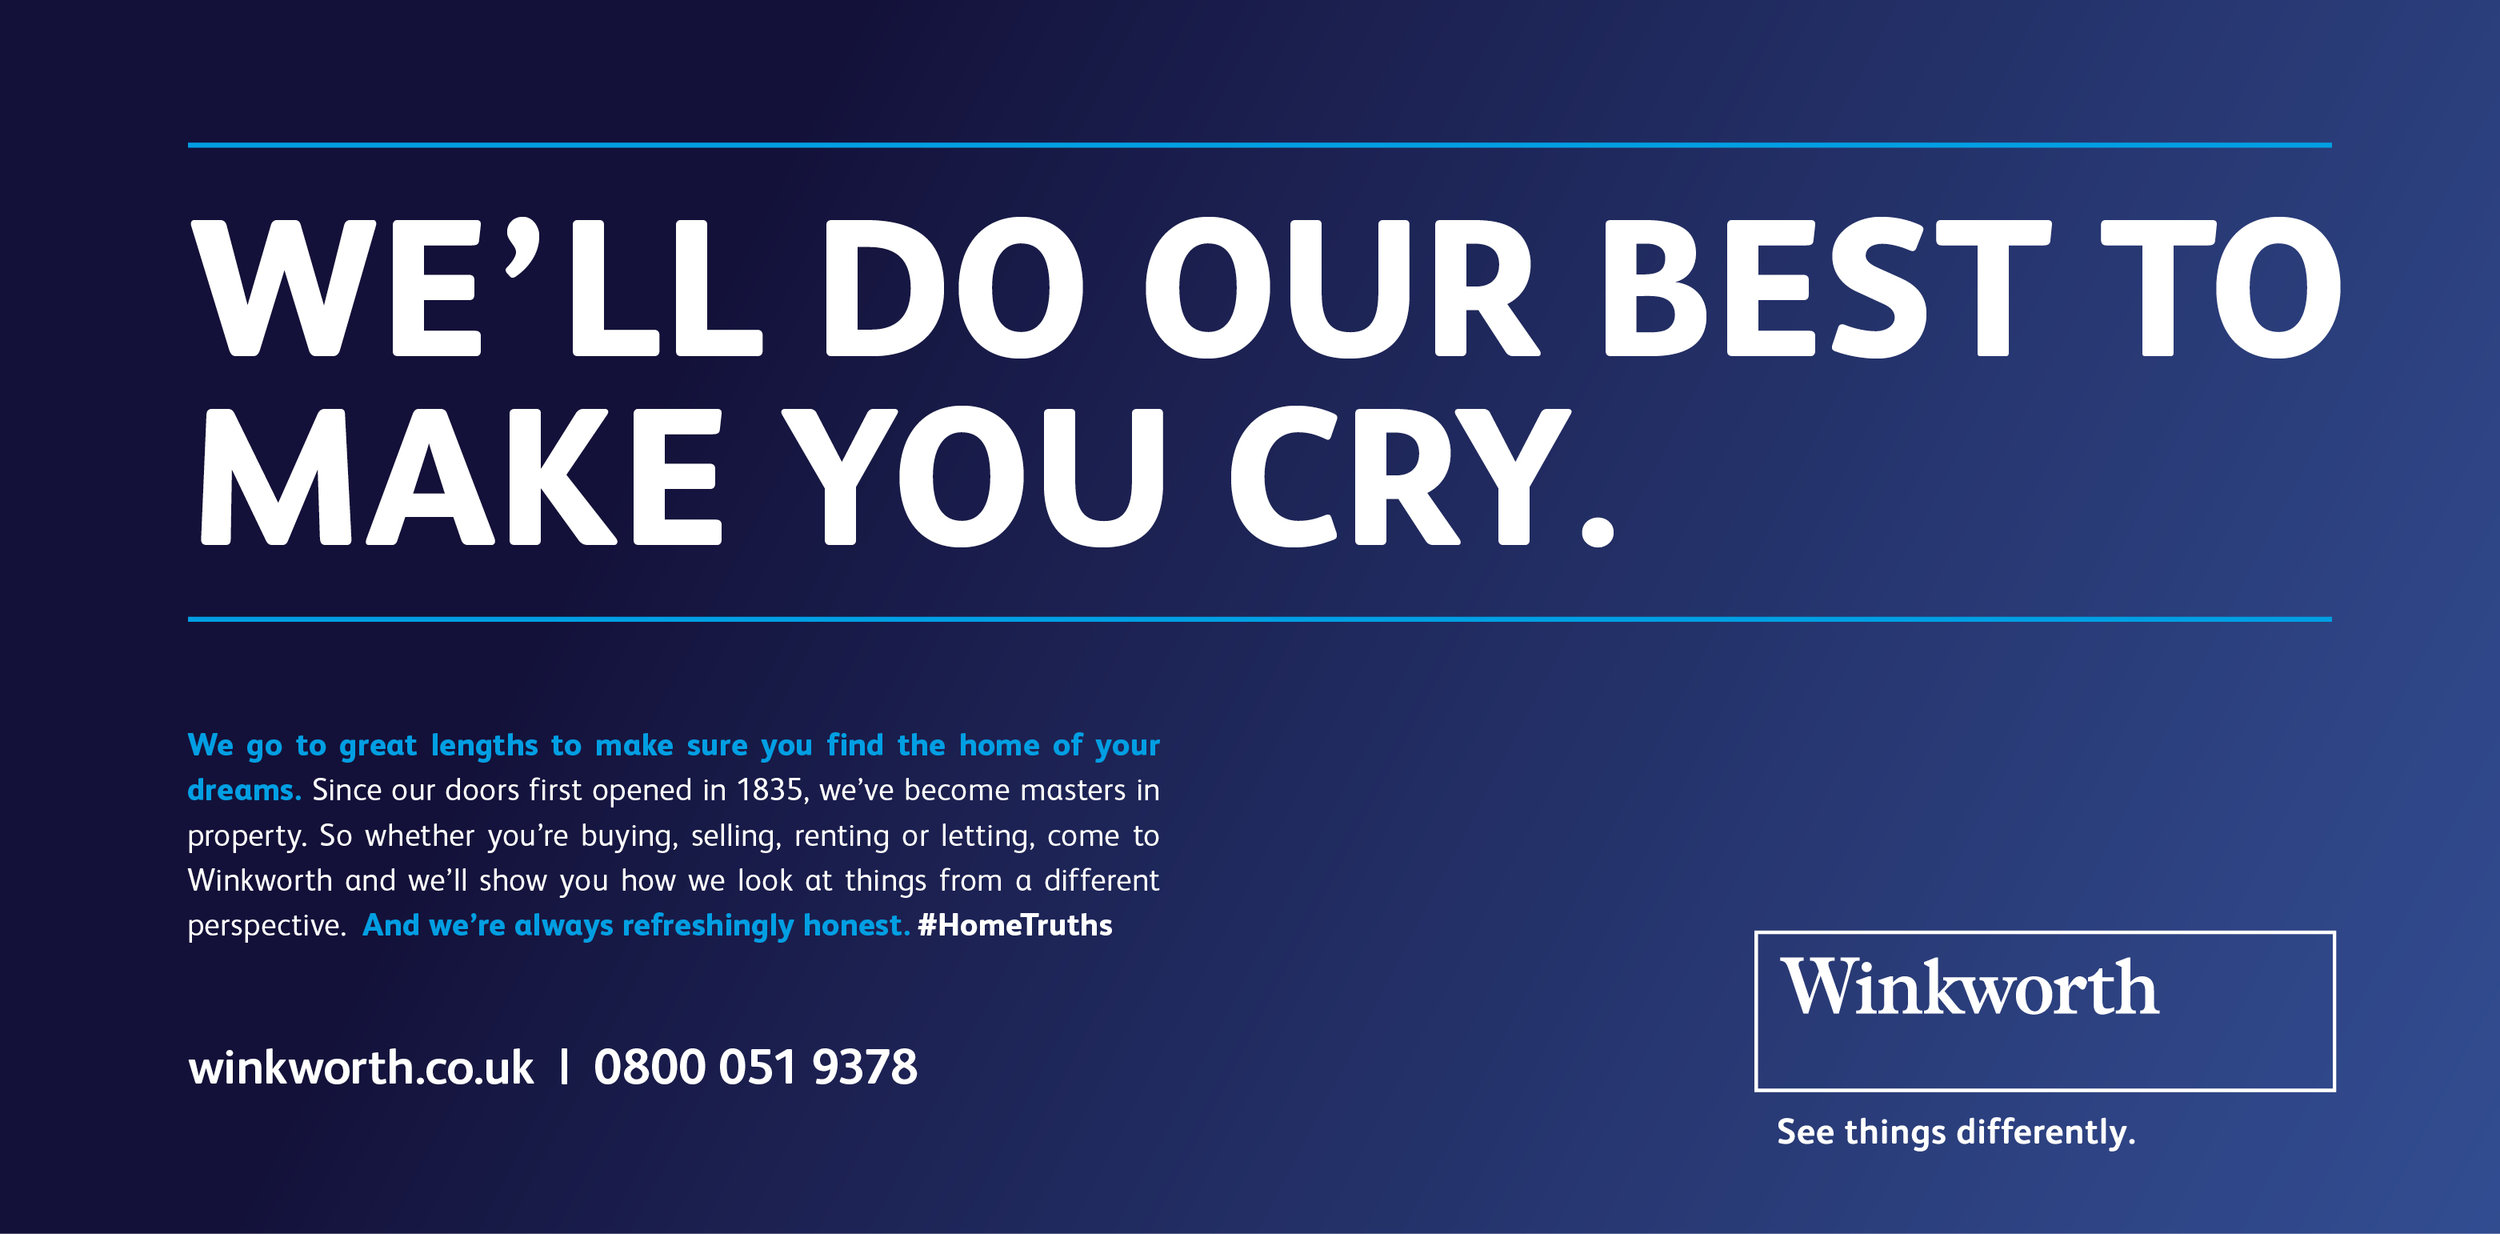 Winkworth5a.jpg